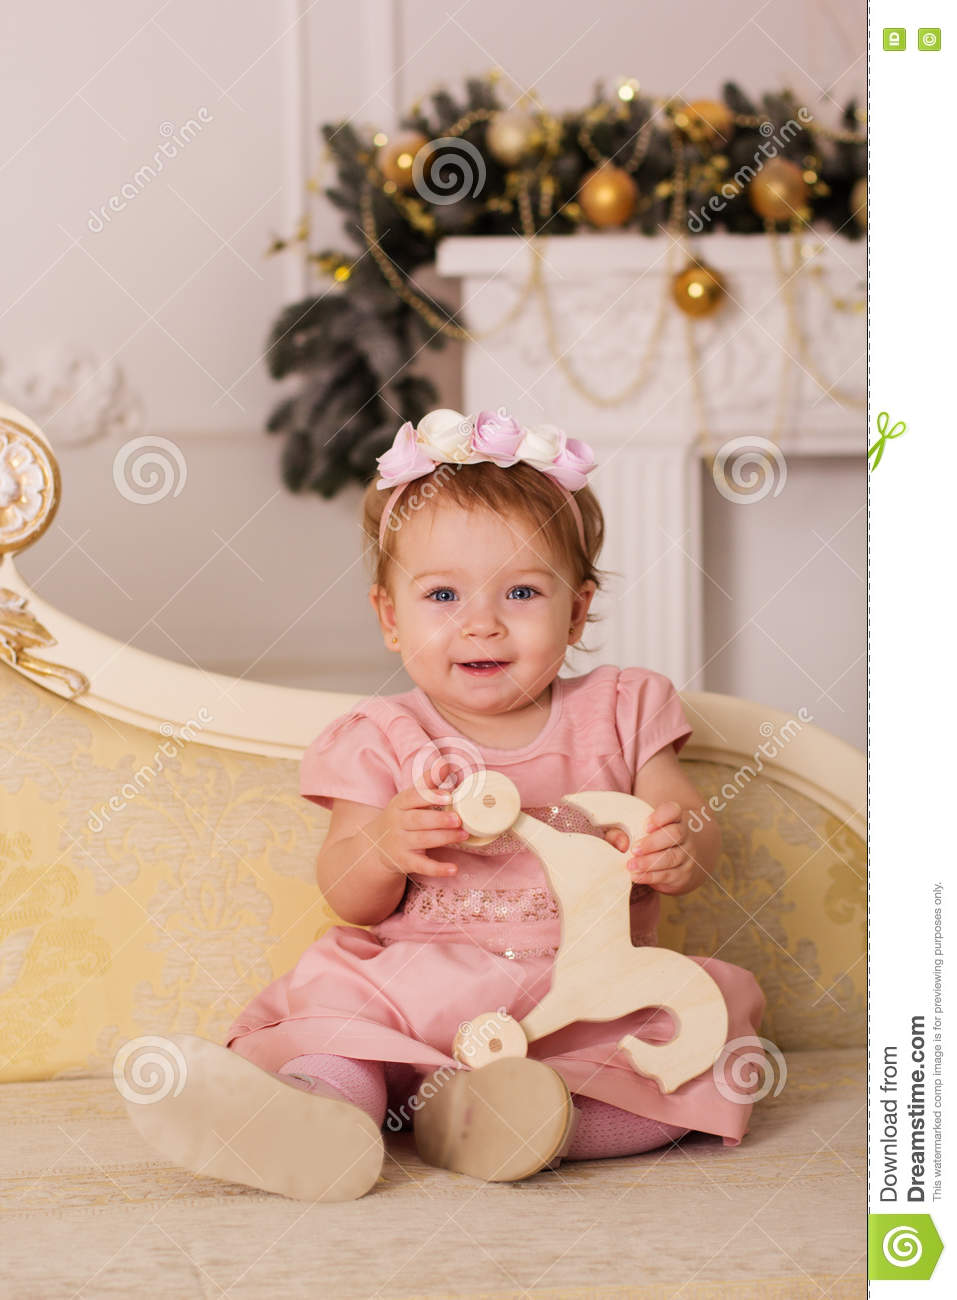 Baby Girl Is Sitting At Home With Christmas Decor Stock Photo Image Of Cute Beautiful 80661280